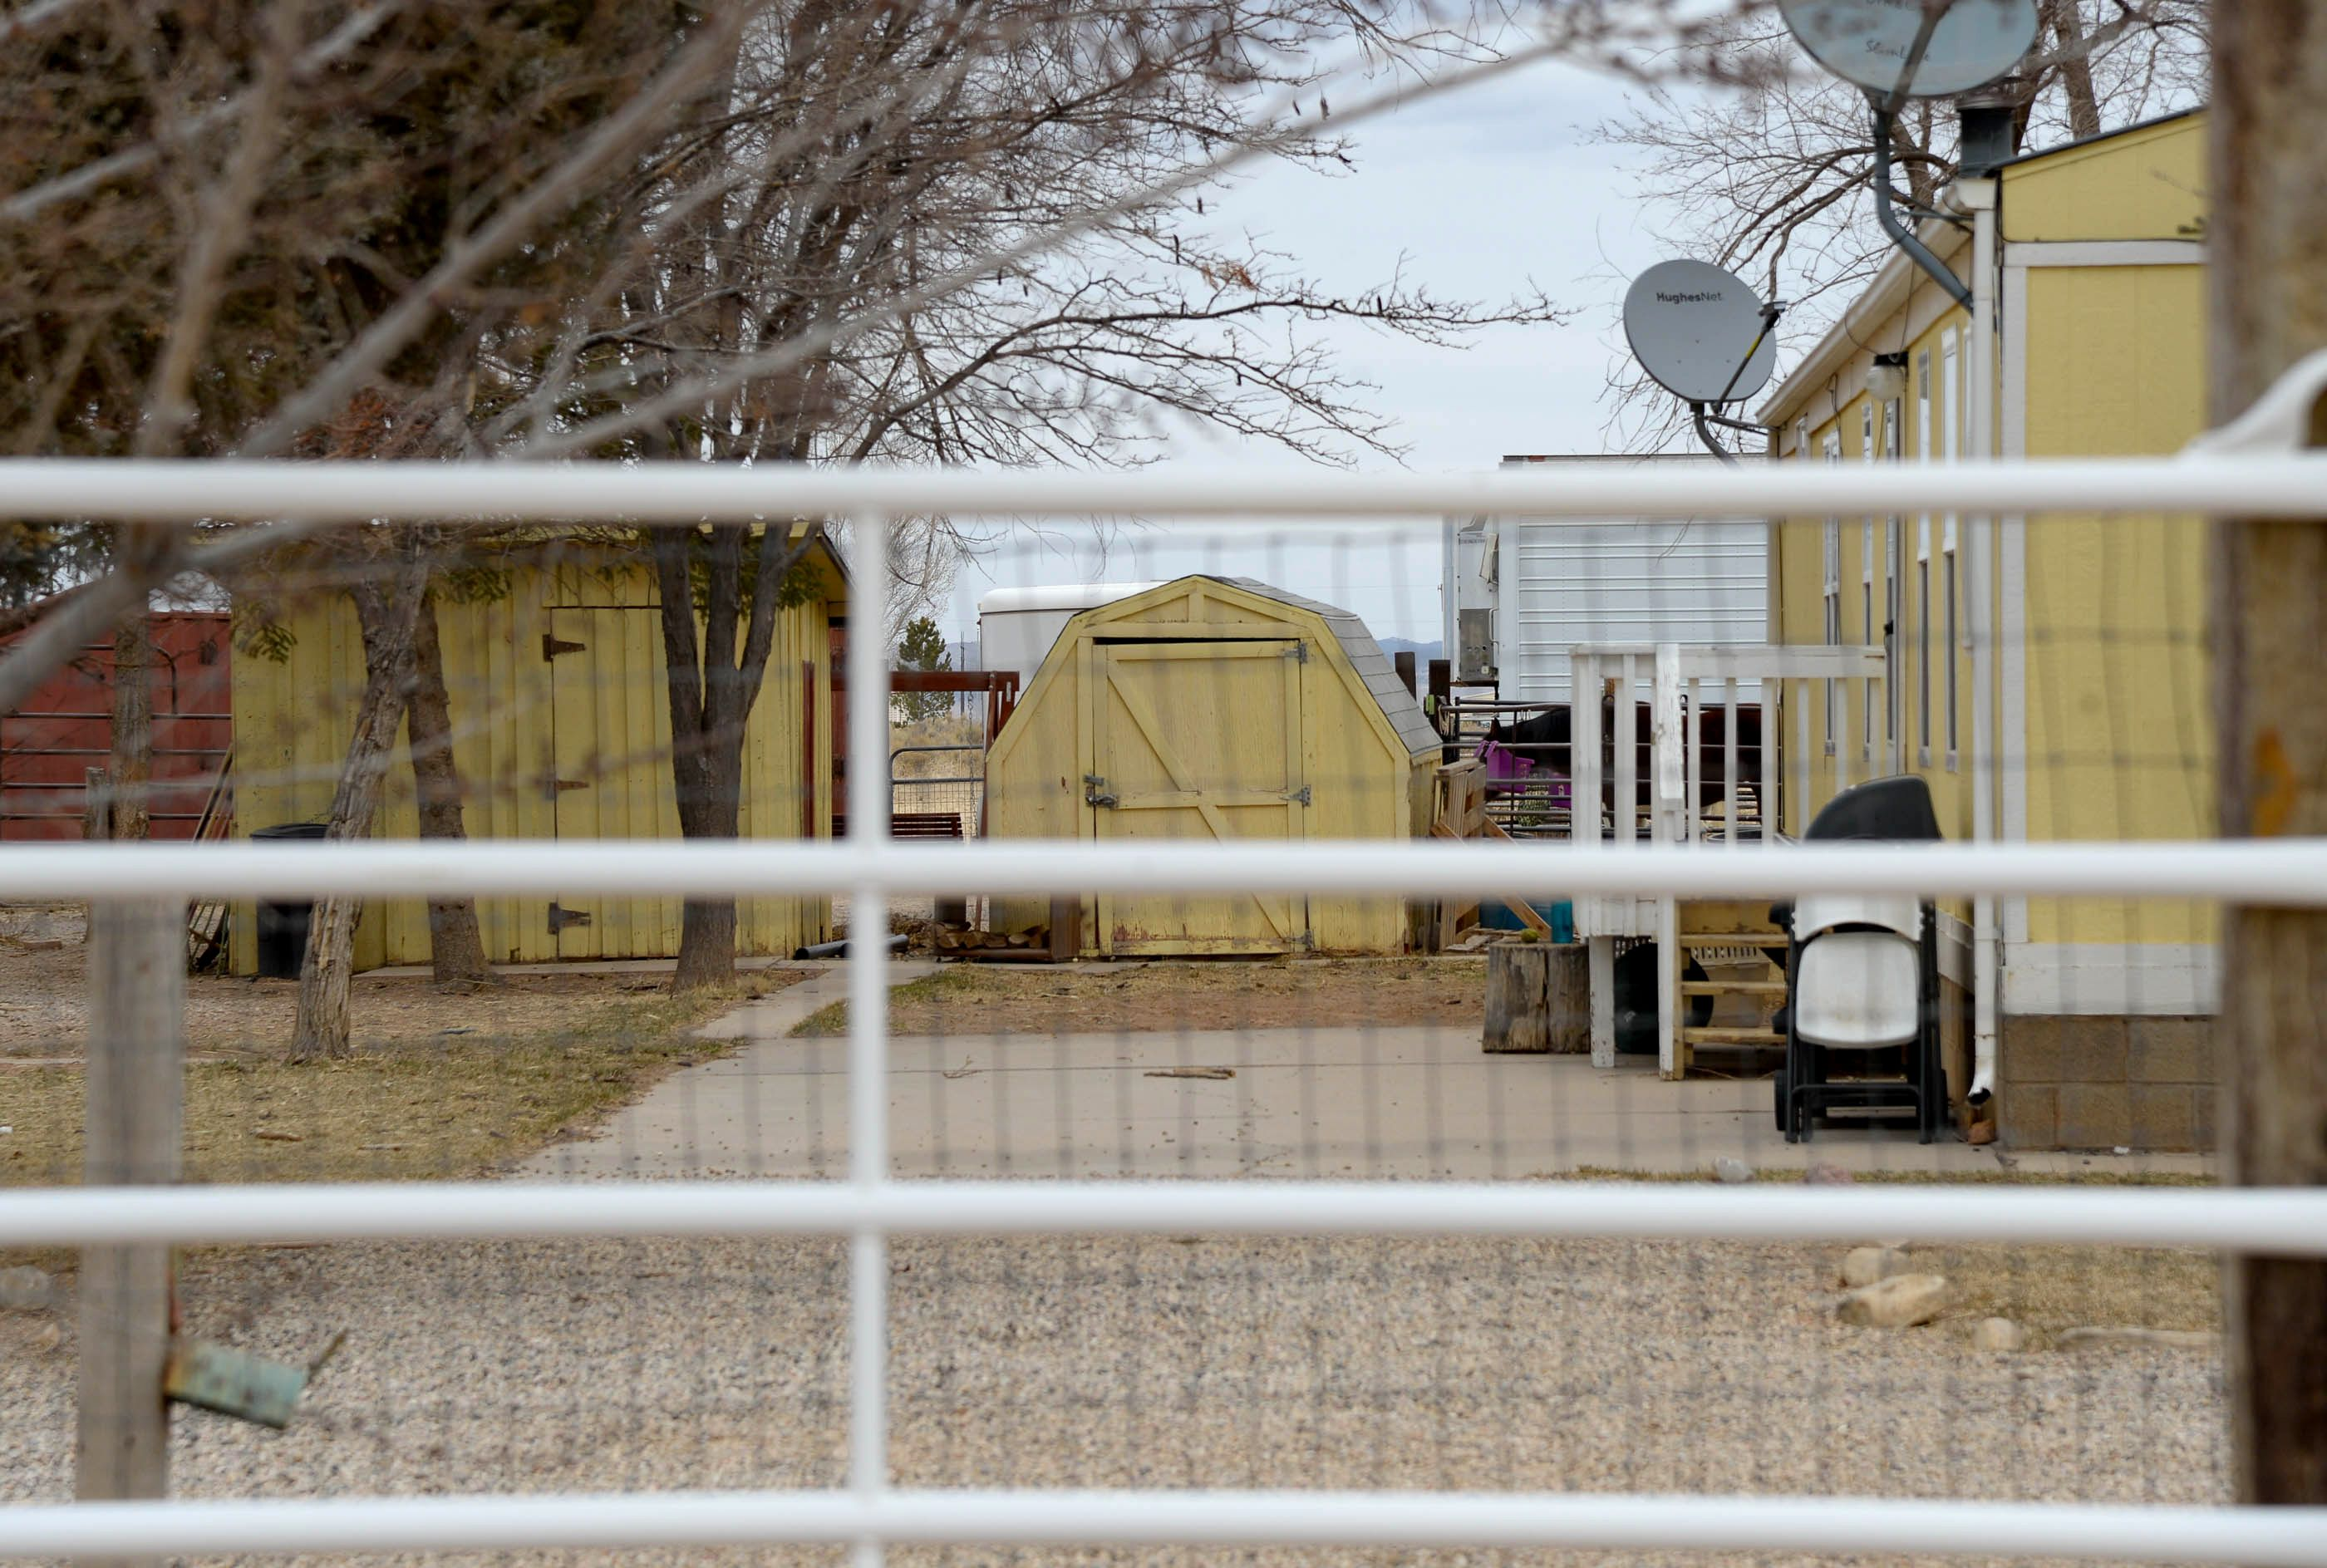 (Francisco Kjolseth | The Salt Lake Tribune) Havenwood Academy, a youth treatment center on the outskirts of Cedar City, was investigated for zip tying a girl's wrists and forcing her to sit in a horse trough full of water in 2018. Utah regulators didn't sanction the program.